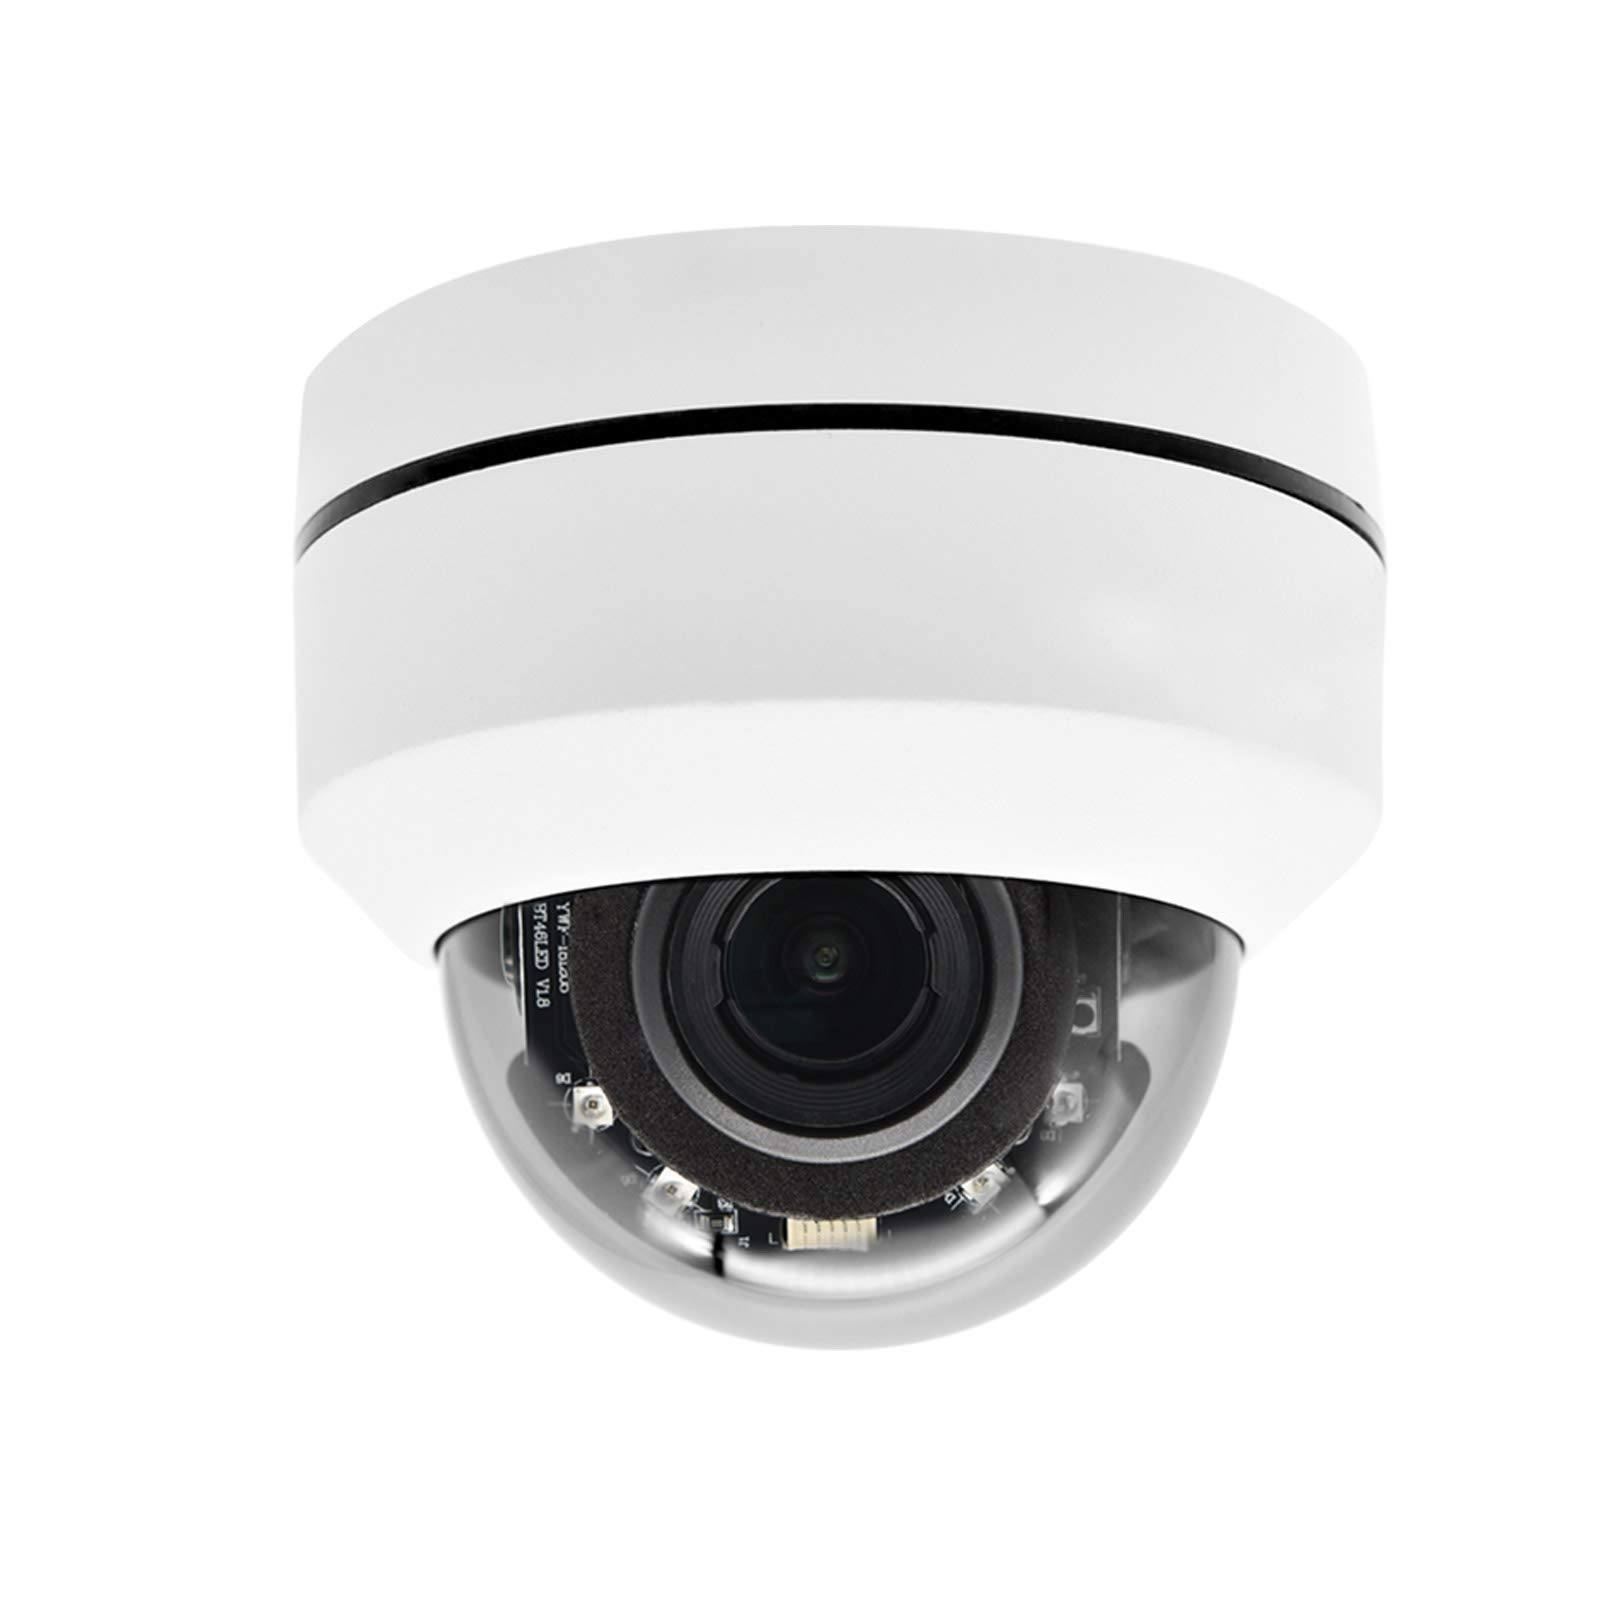 Hikvision Compatible Outdoor 5MP PTZ IP Camera, 4X Optical Zoom 16x Digital Zoom Pan Tilt with 165ft IR Night Vsion,Motion Detect,WDR,IP67,IK10,ONVIF,PoE PTZ Dome Camera(2504X-IZ)